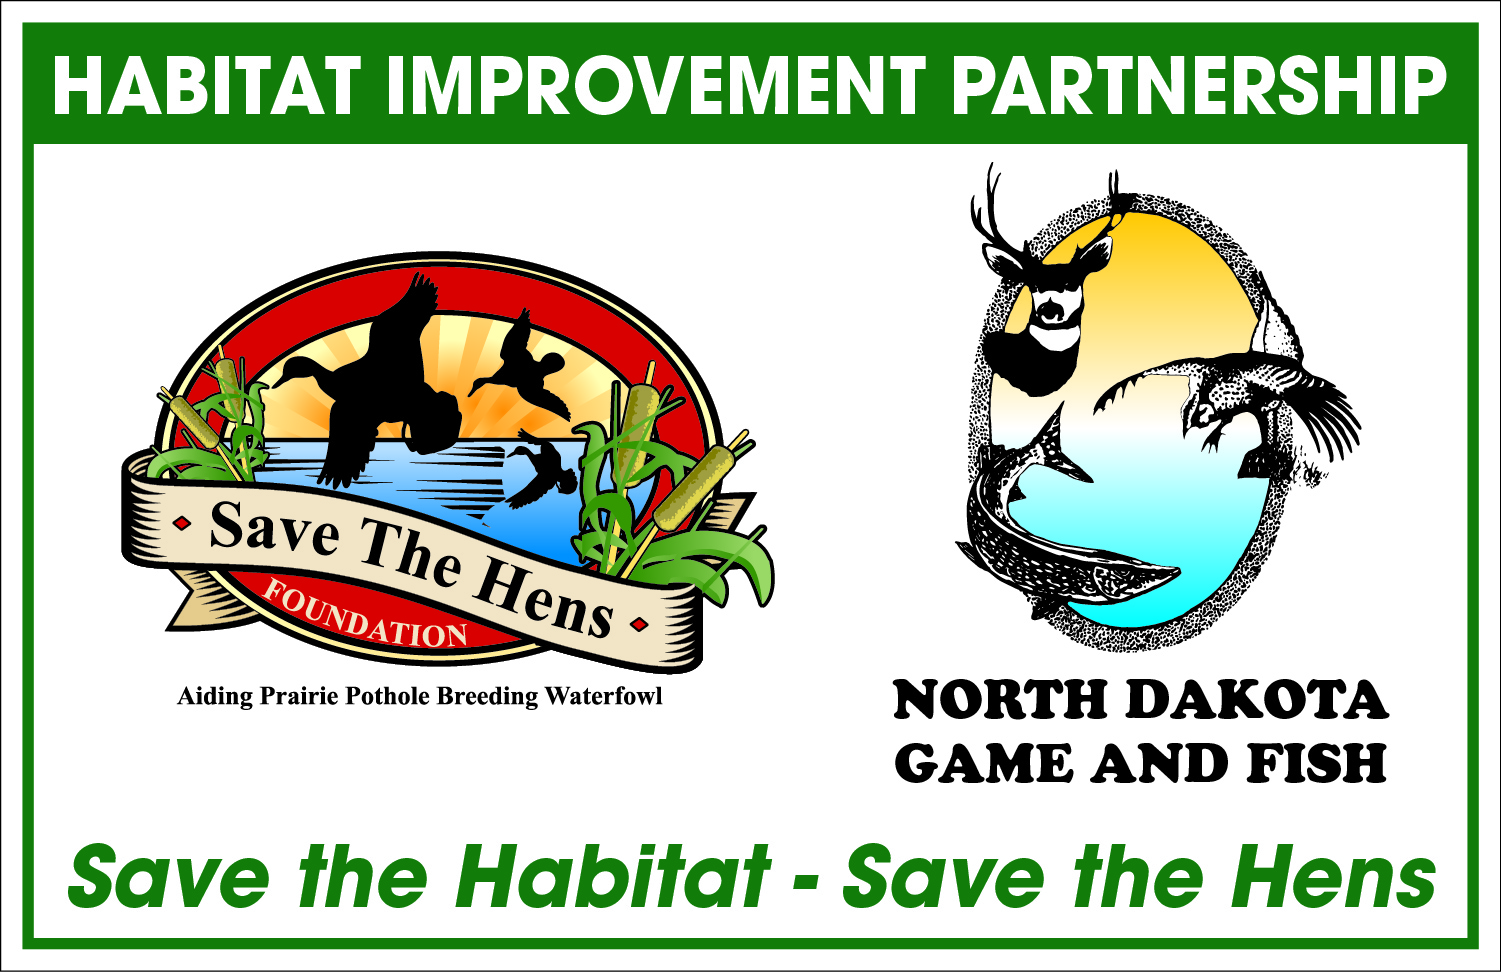 Habitat Improvement Partnership.jpg